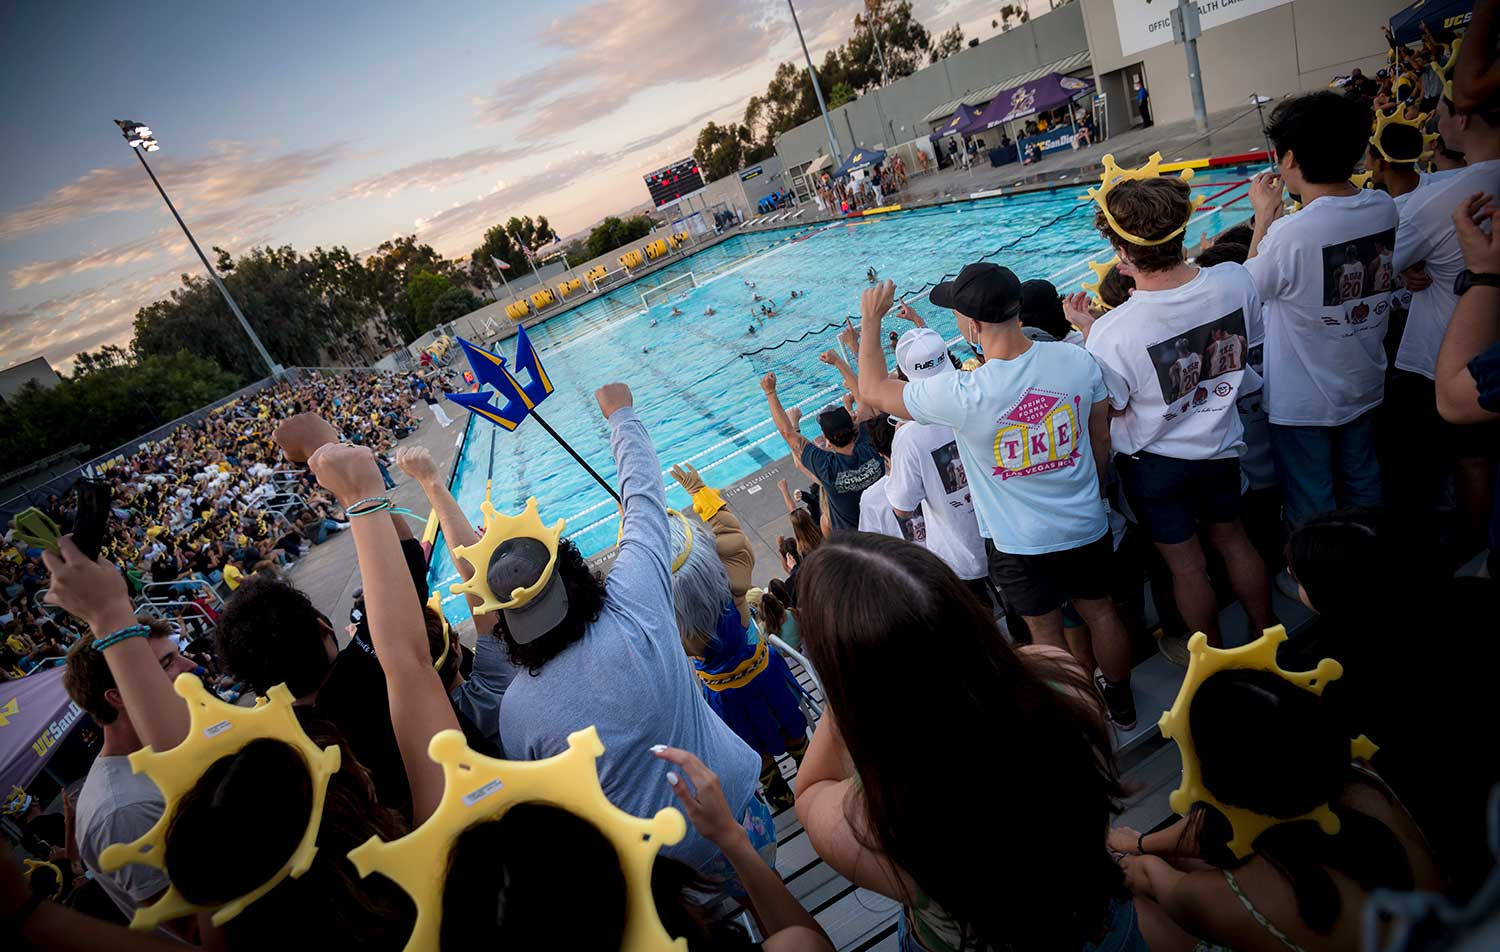 spirited fans in the stands at Canyonview Aquatic Center.